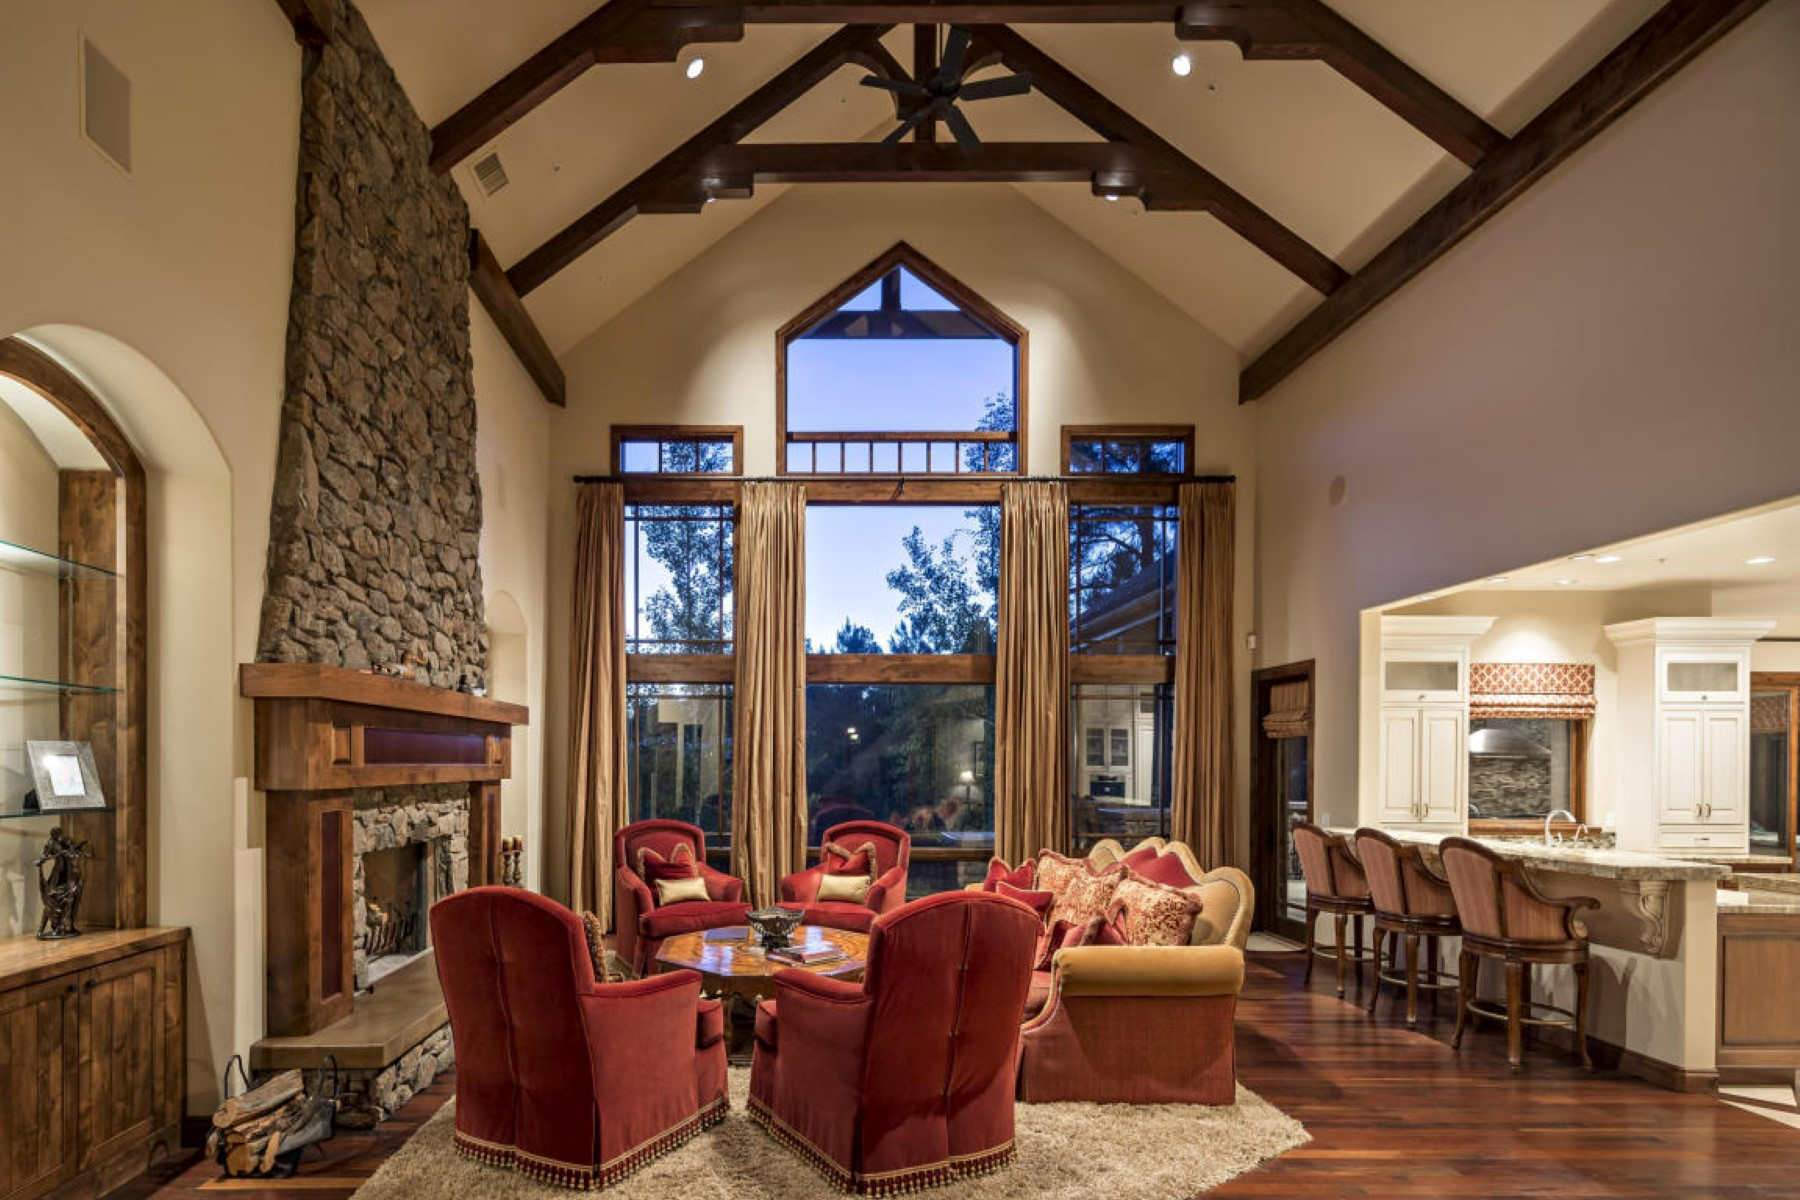 Single Family Home for Sale at Incredible custom residence on the 11th hole of Pine Canyon 2051 E Barranca Dr Flagstaff, Arizona, 86001 United States